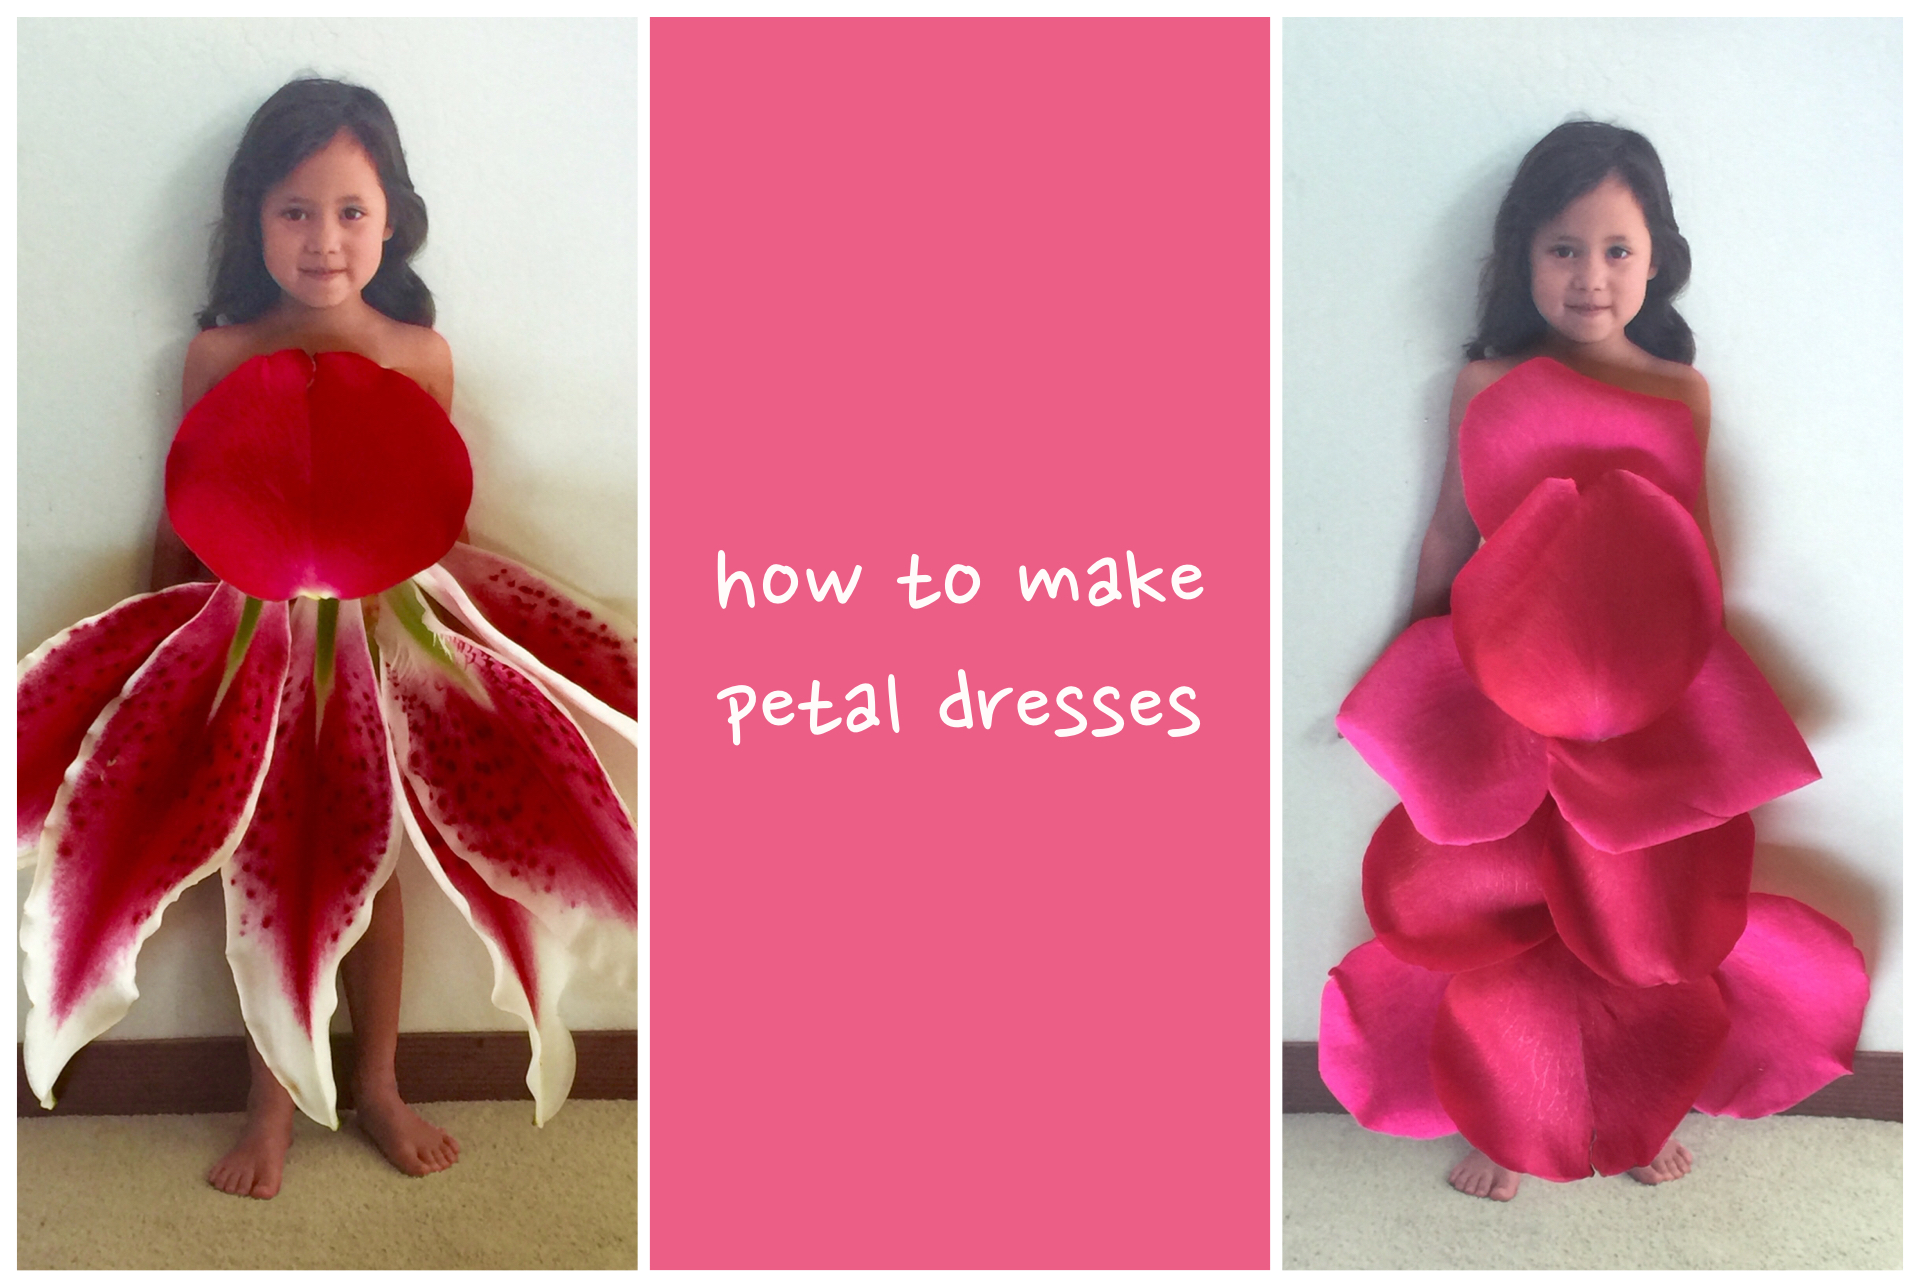 How to Make Petal Dresses